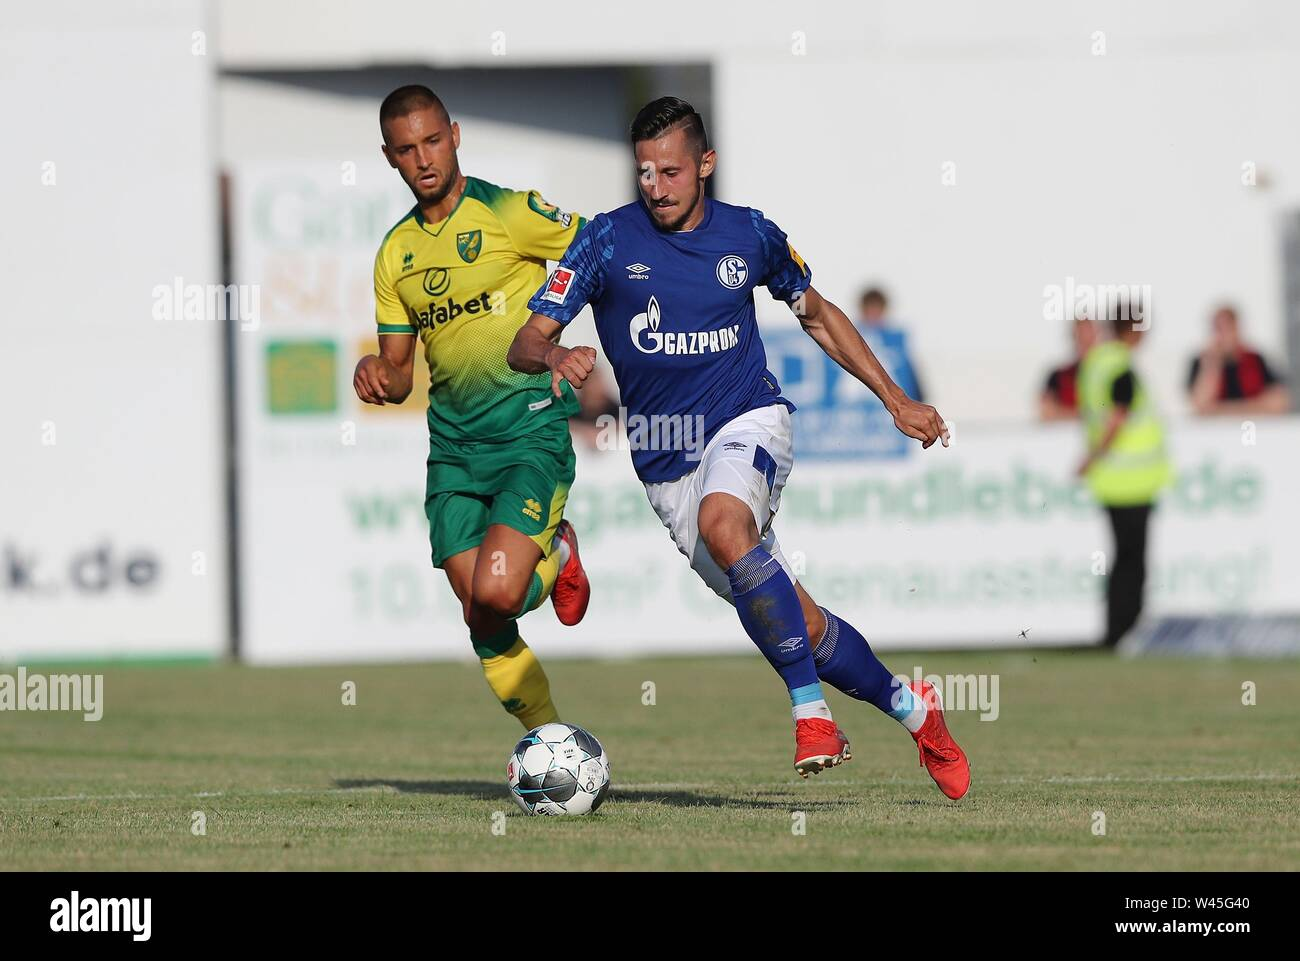 Lotte, Deutschland. 19th July, 2019. firo: 19.07.2019, football, 1.Bundesliga, season 2019/2020, friendly match, FC Schalke 04 - Norwich City Steven SKRZYBSKI, Schalke right duels | usage worldwide Credit: dpa/Alamy Live News - Stock Image